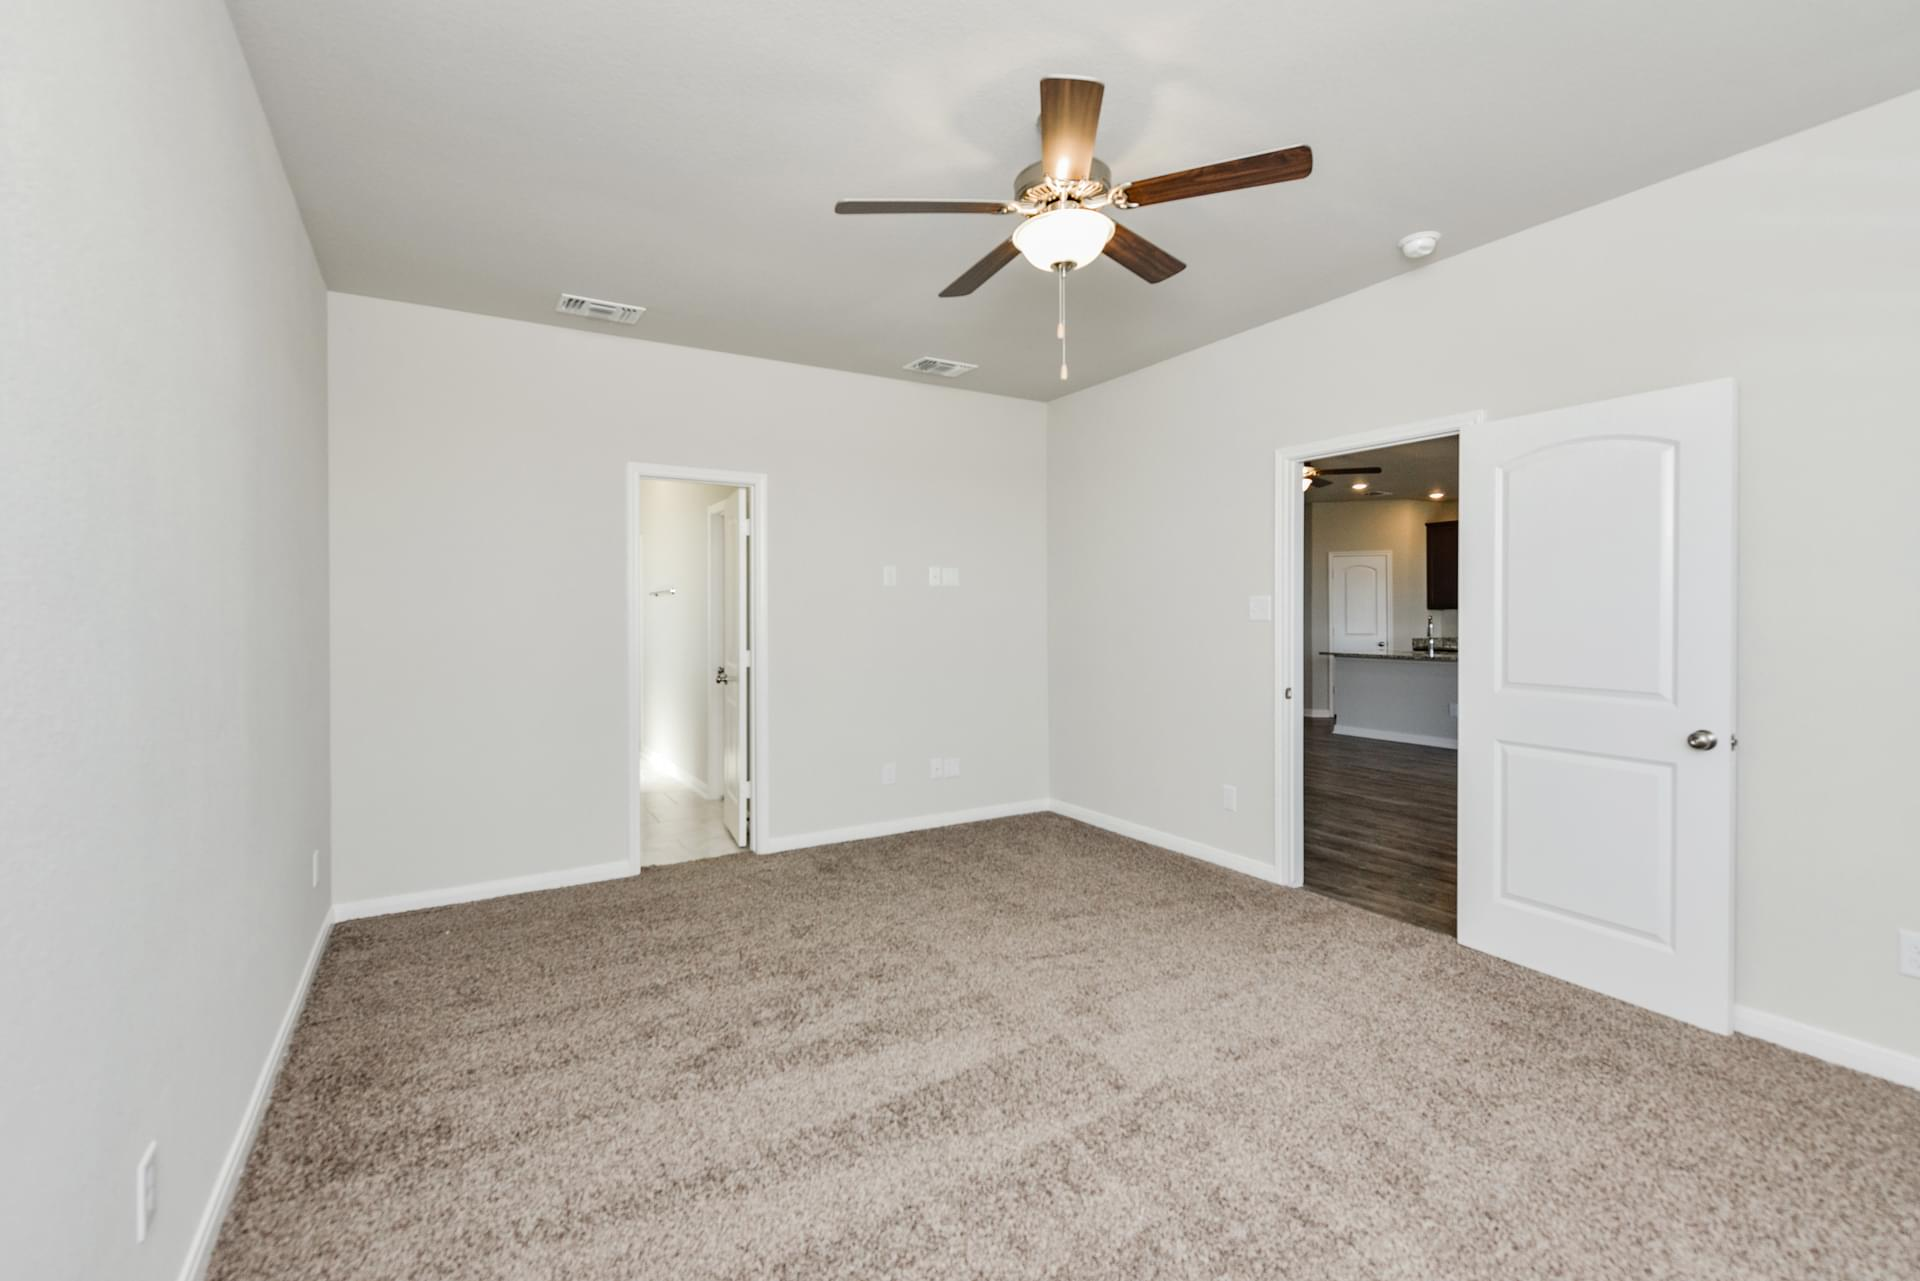 2,566sf New Home in Killeen, TX